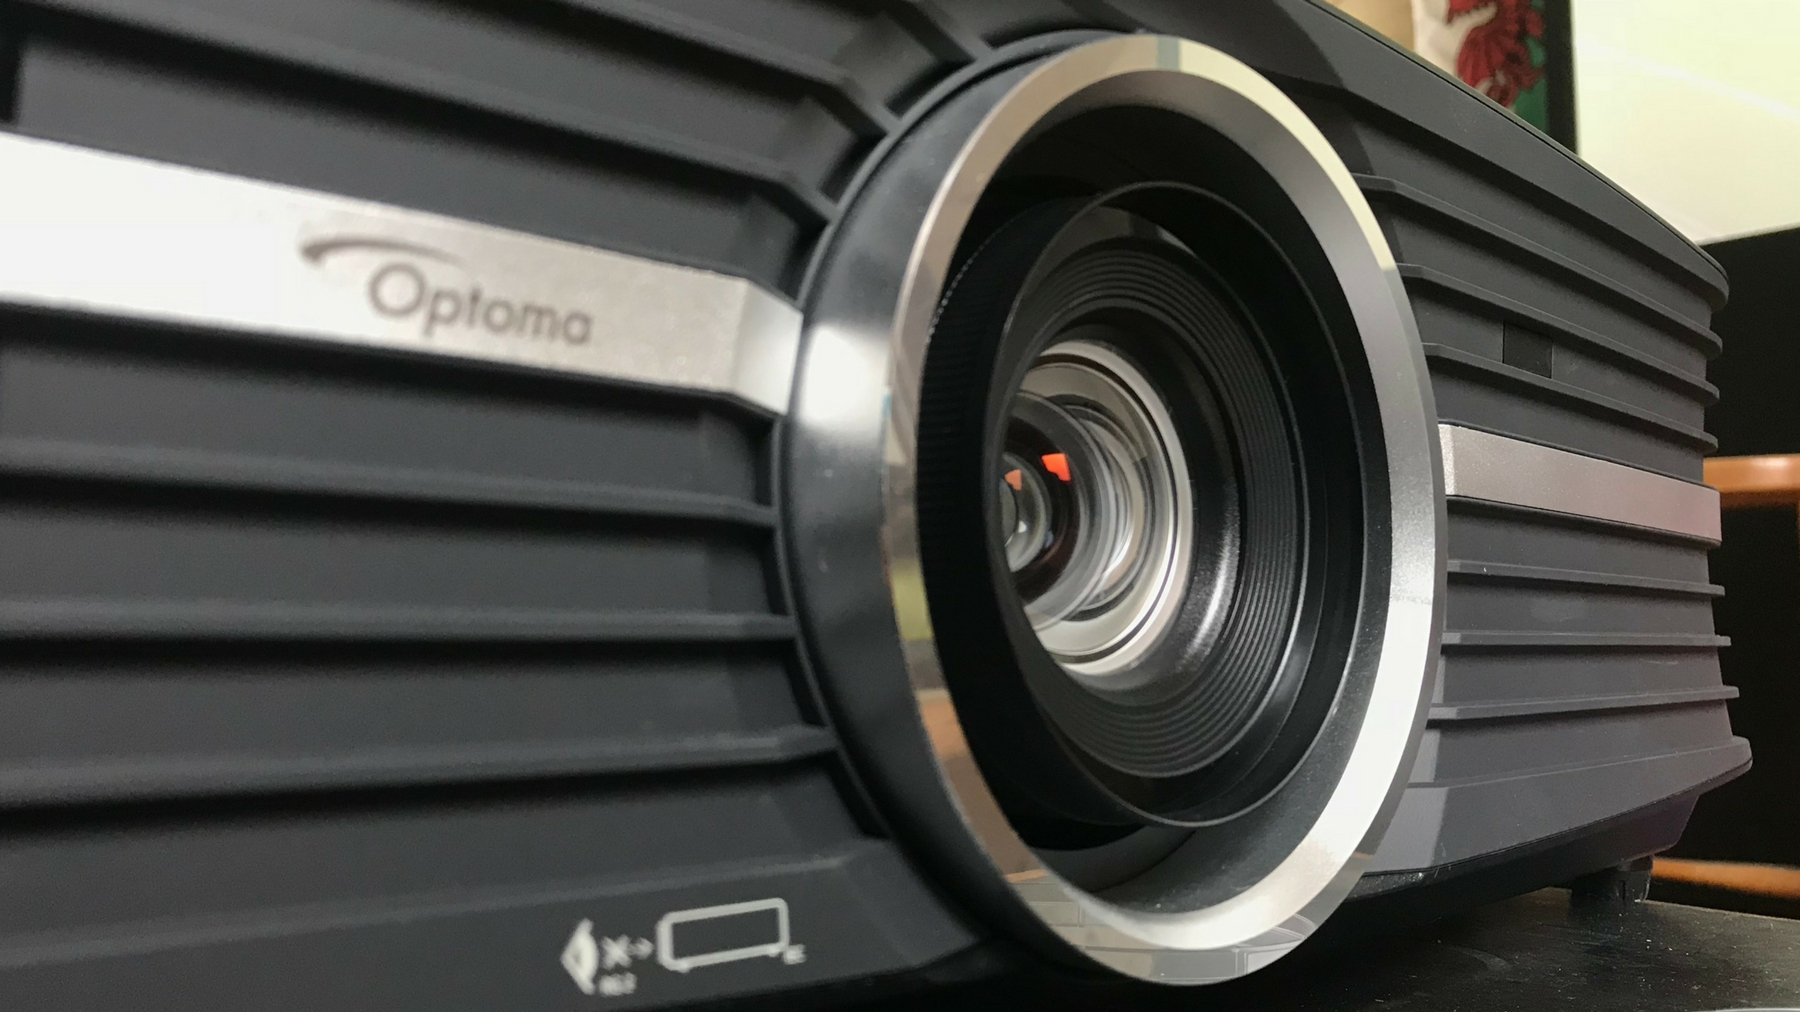 Best business projectors of 2020: top projectors for home and travel thumbnail